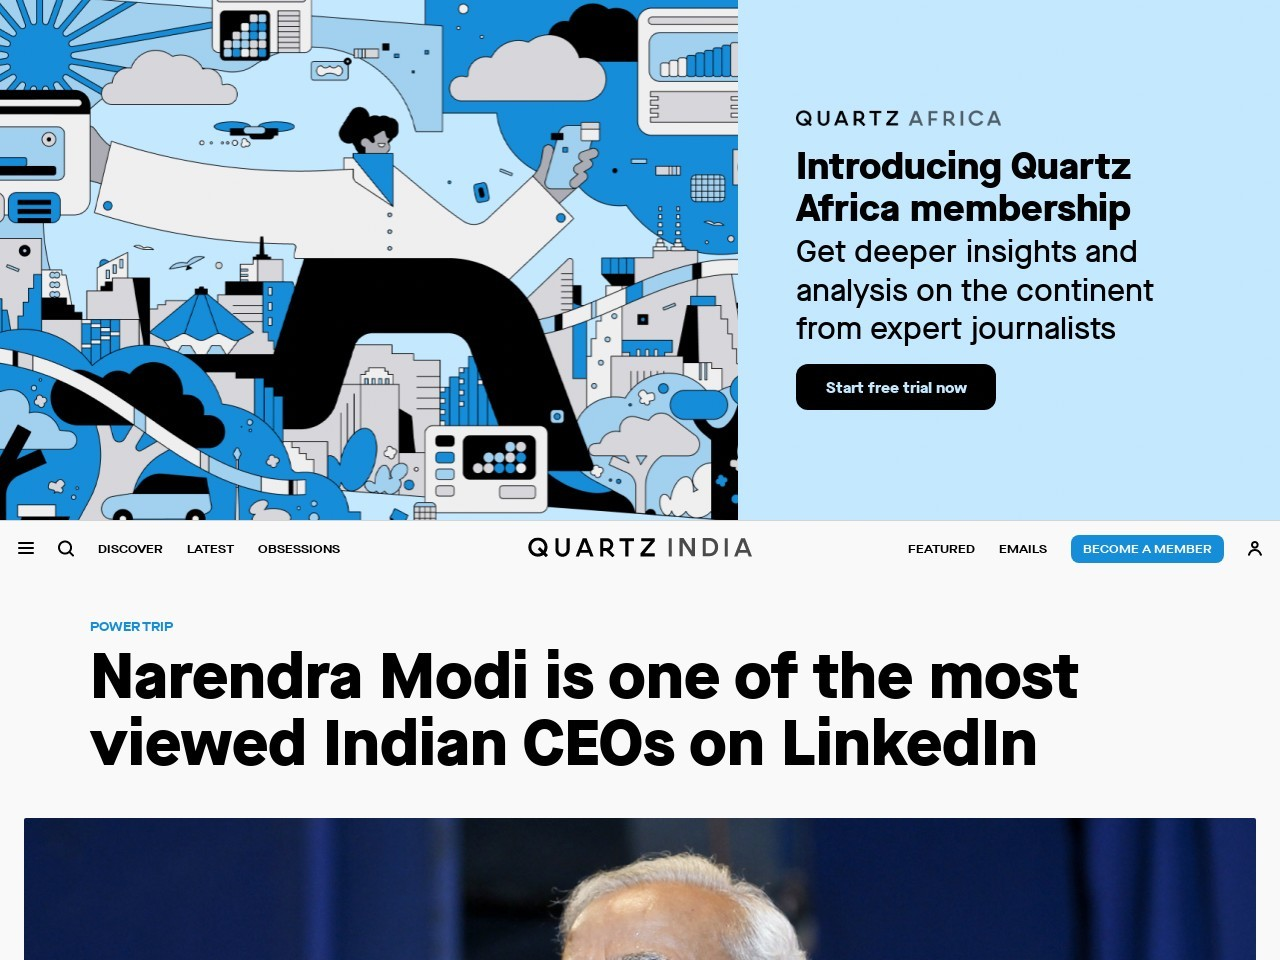 Narendra Modi is one of the most viewed Indian CEOs on LinkedIn